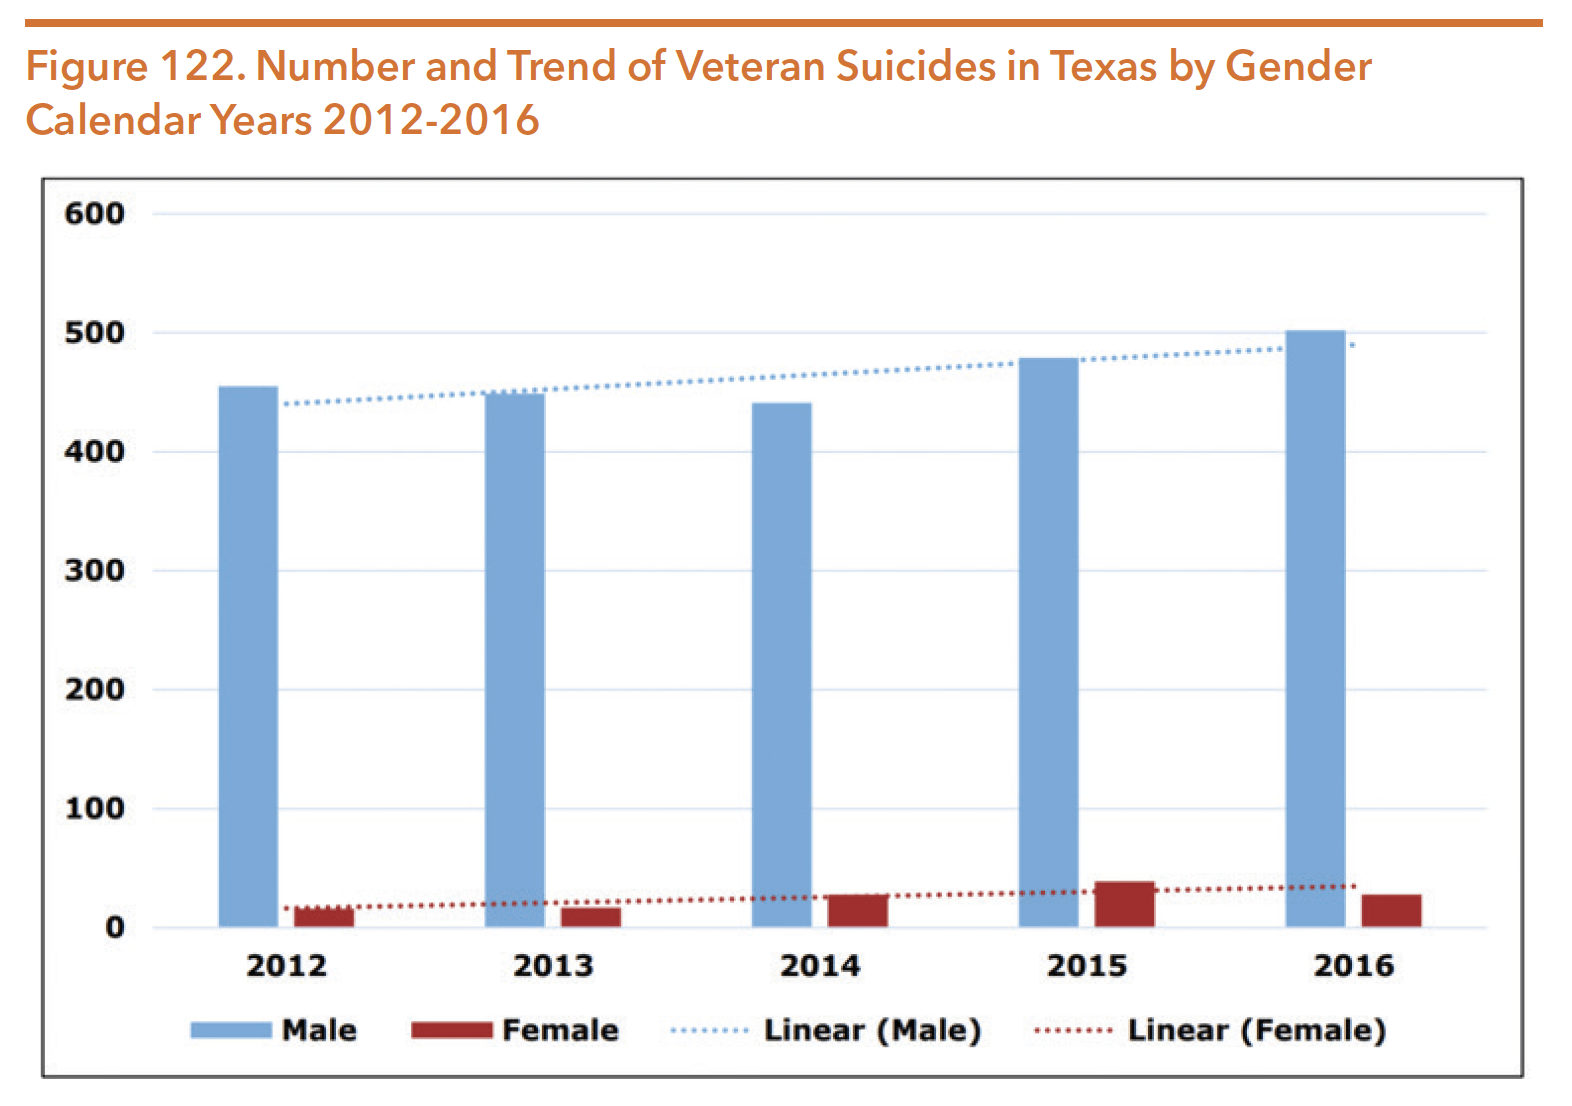 Figure 122. Number and Trend of Veteran Suicides in Texas by Gender Calendar Years 2012-2016